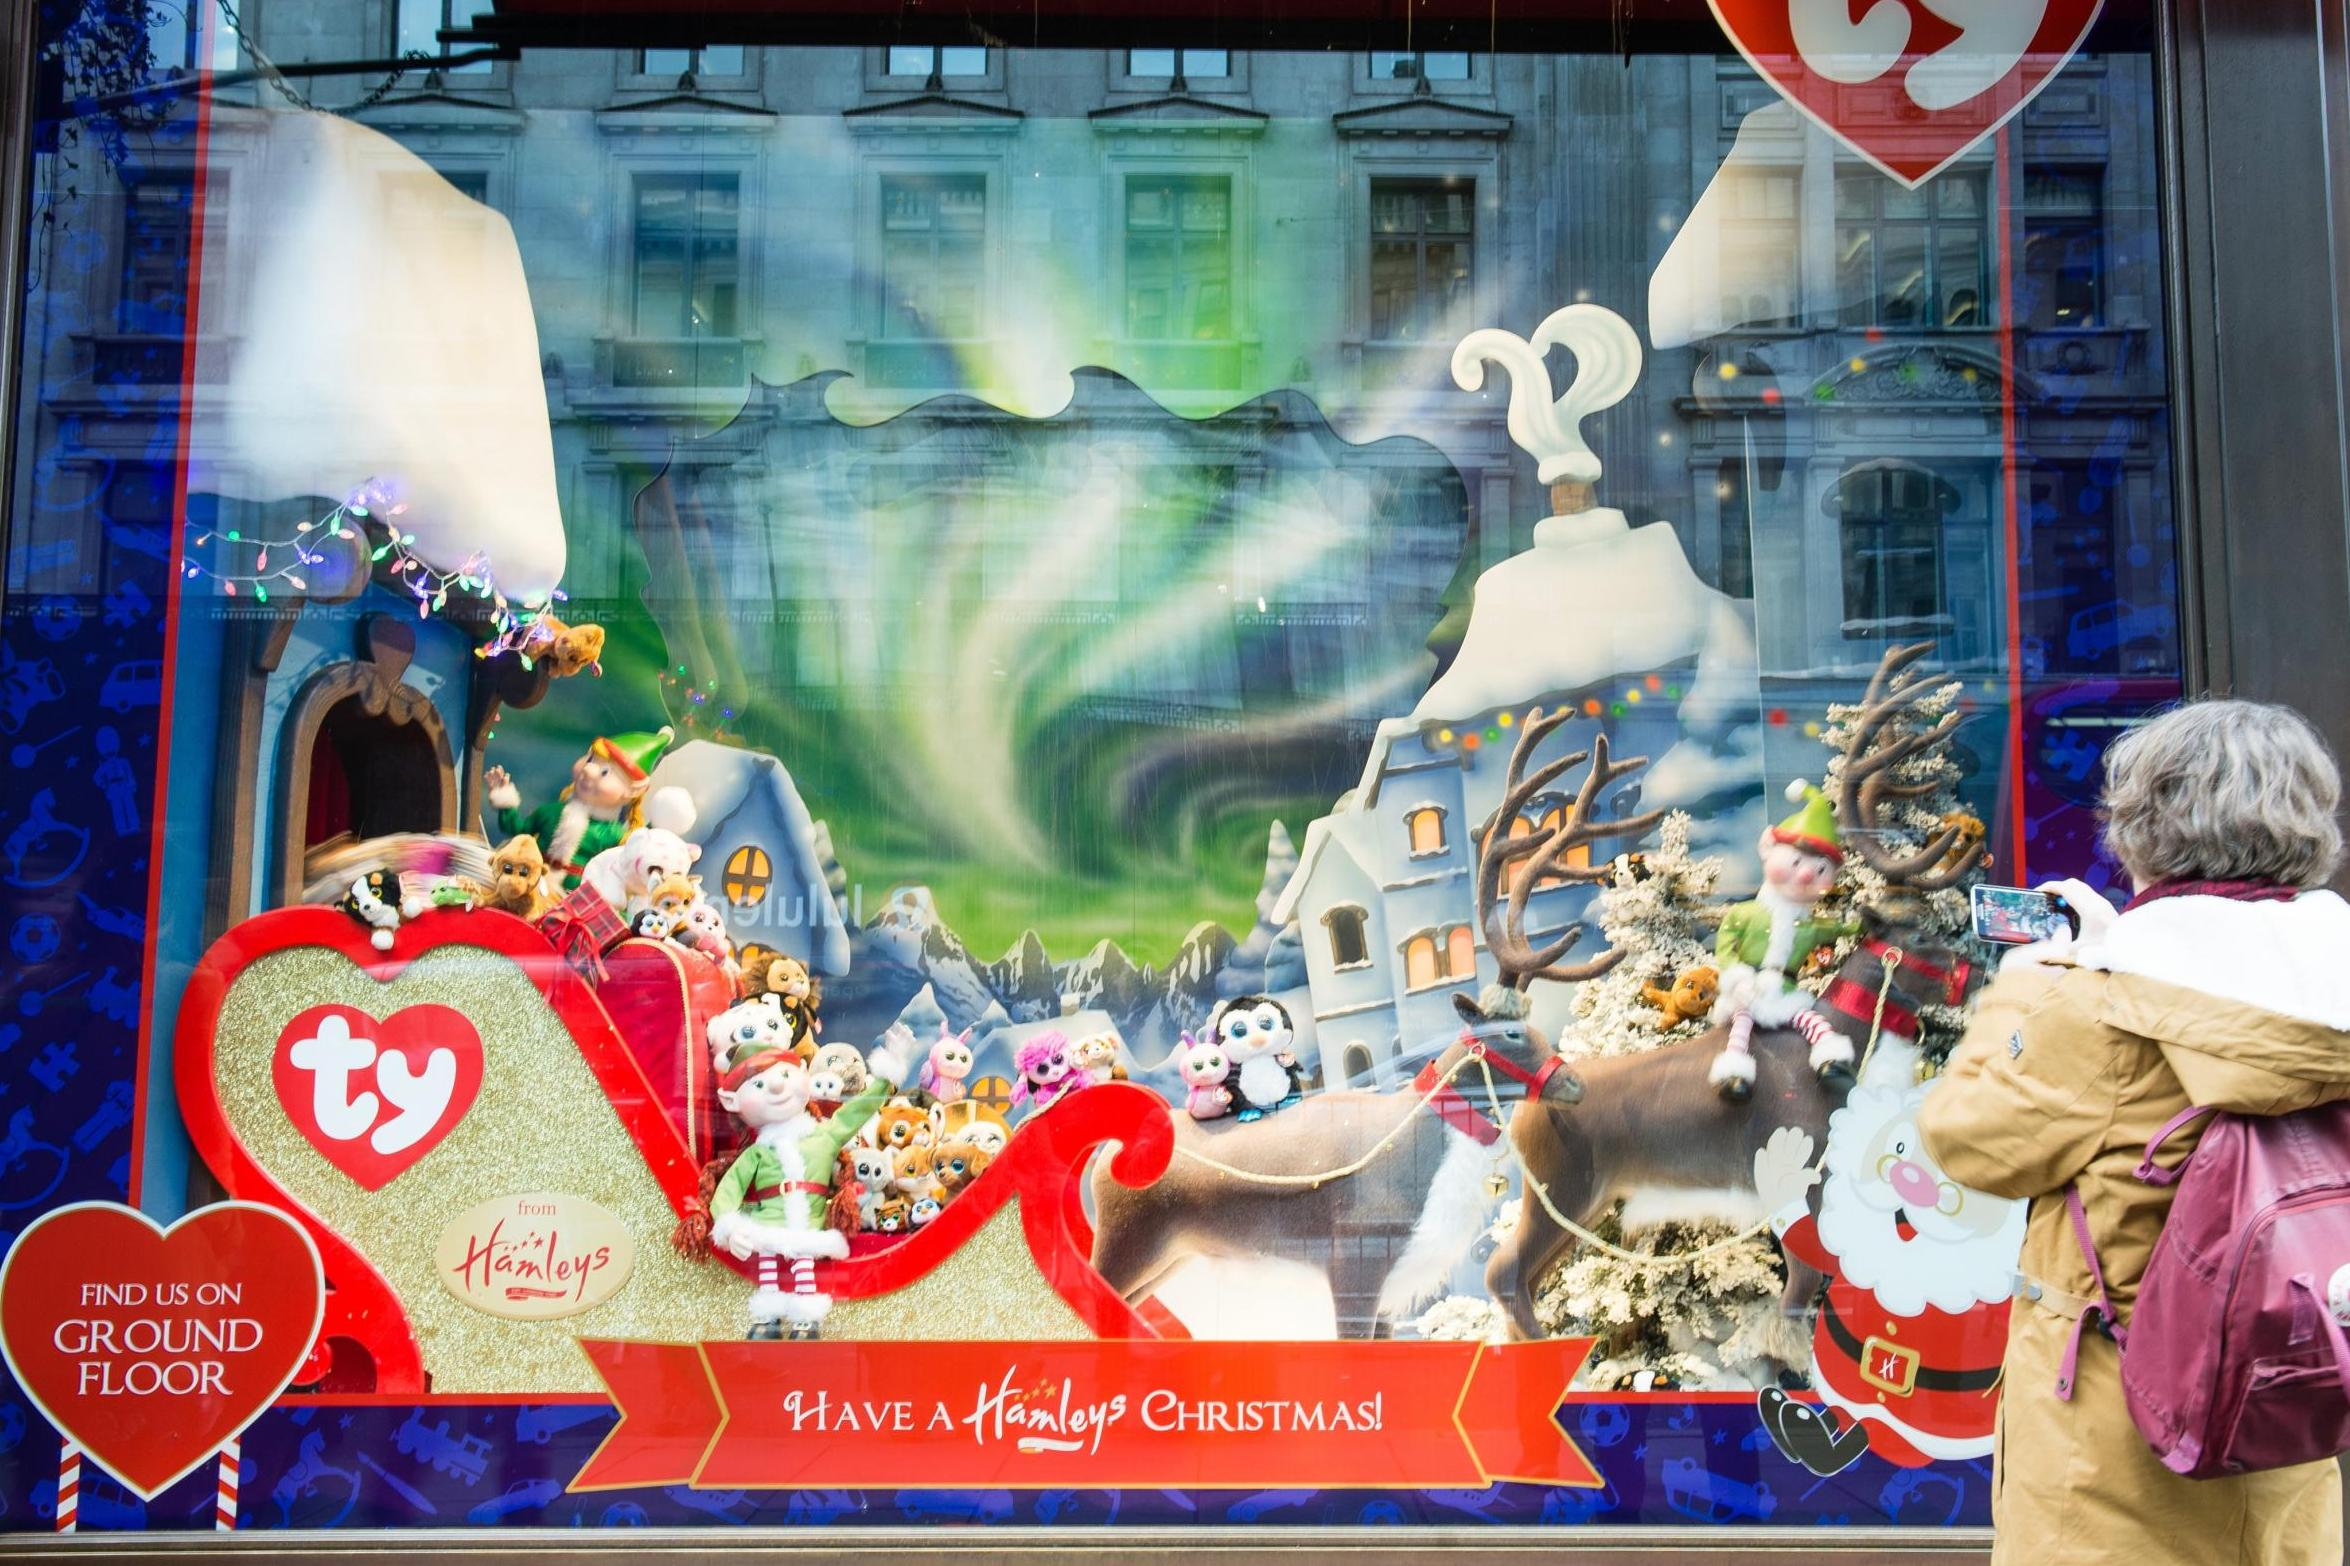 A grand opening and a magic world for toys created in the Christmas window display at Hamleys.